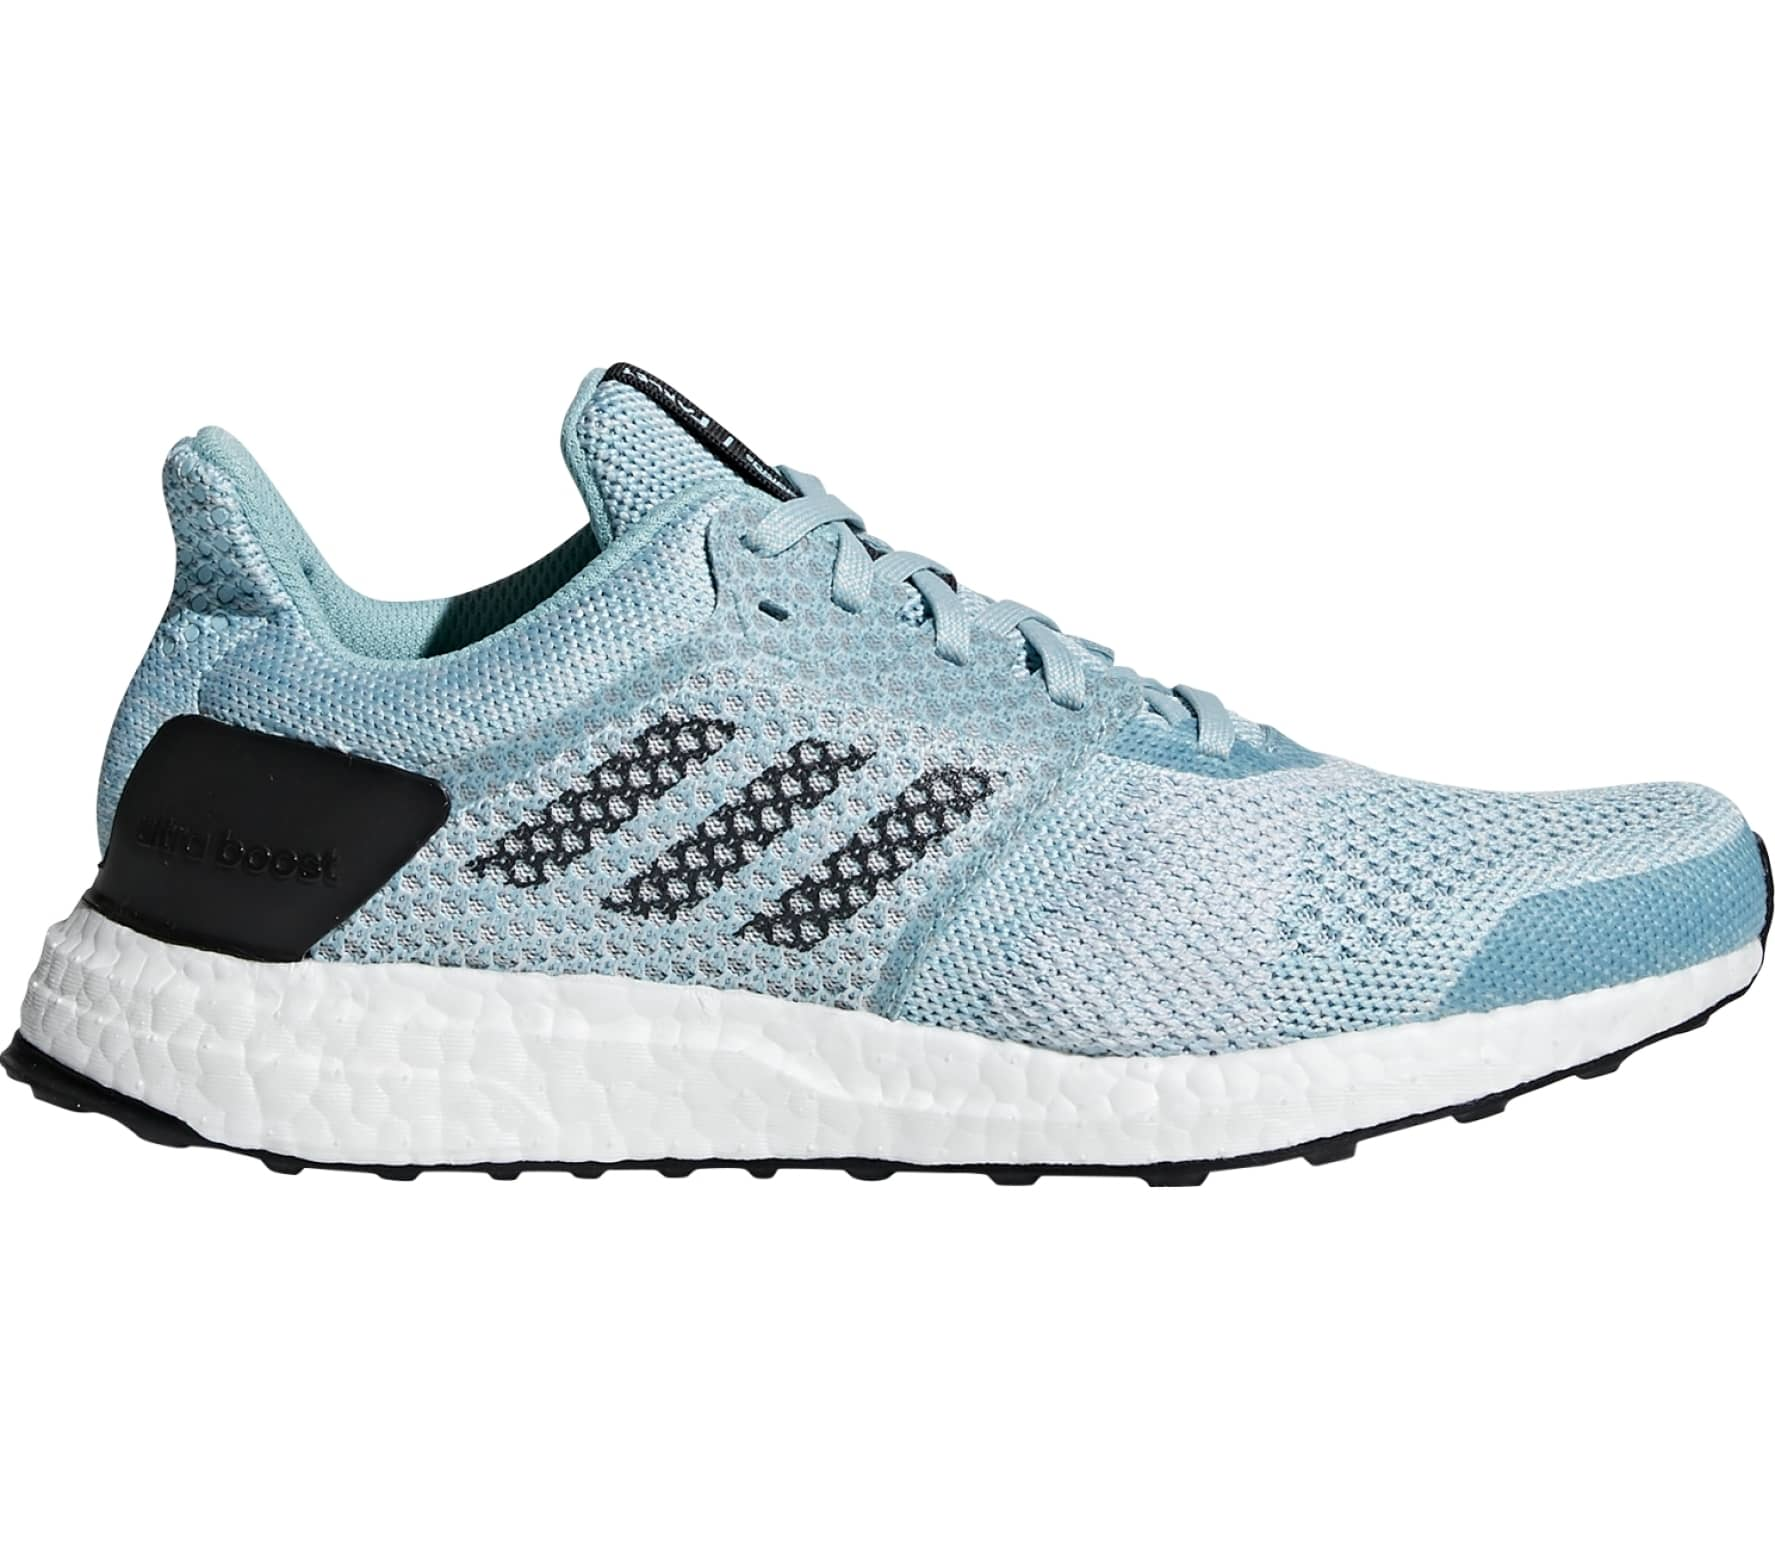 d052c35d7e2 Adidas - UltraBOOST ST Parley women s running shoes (blue) - buy it ...